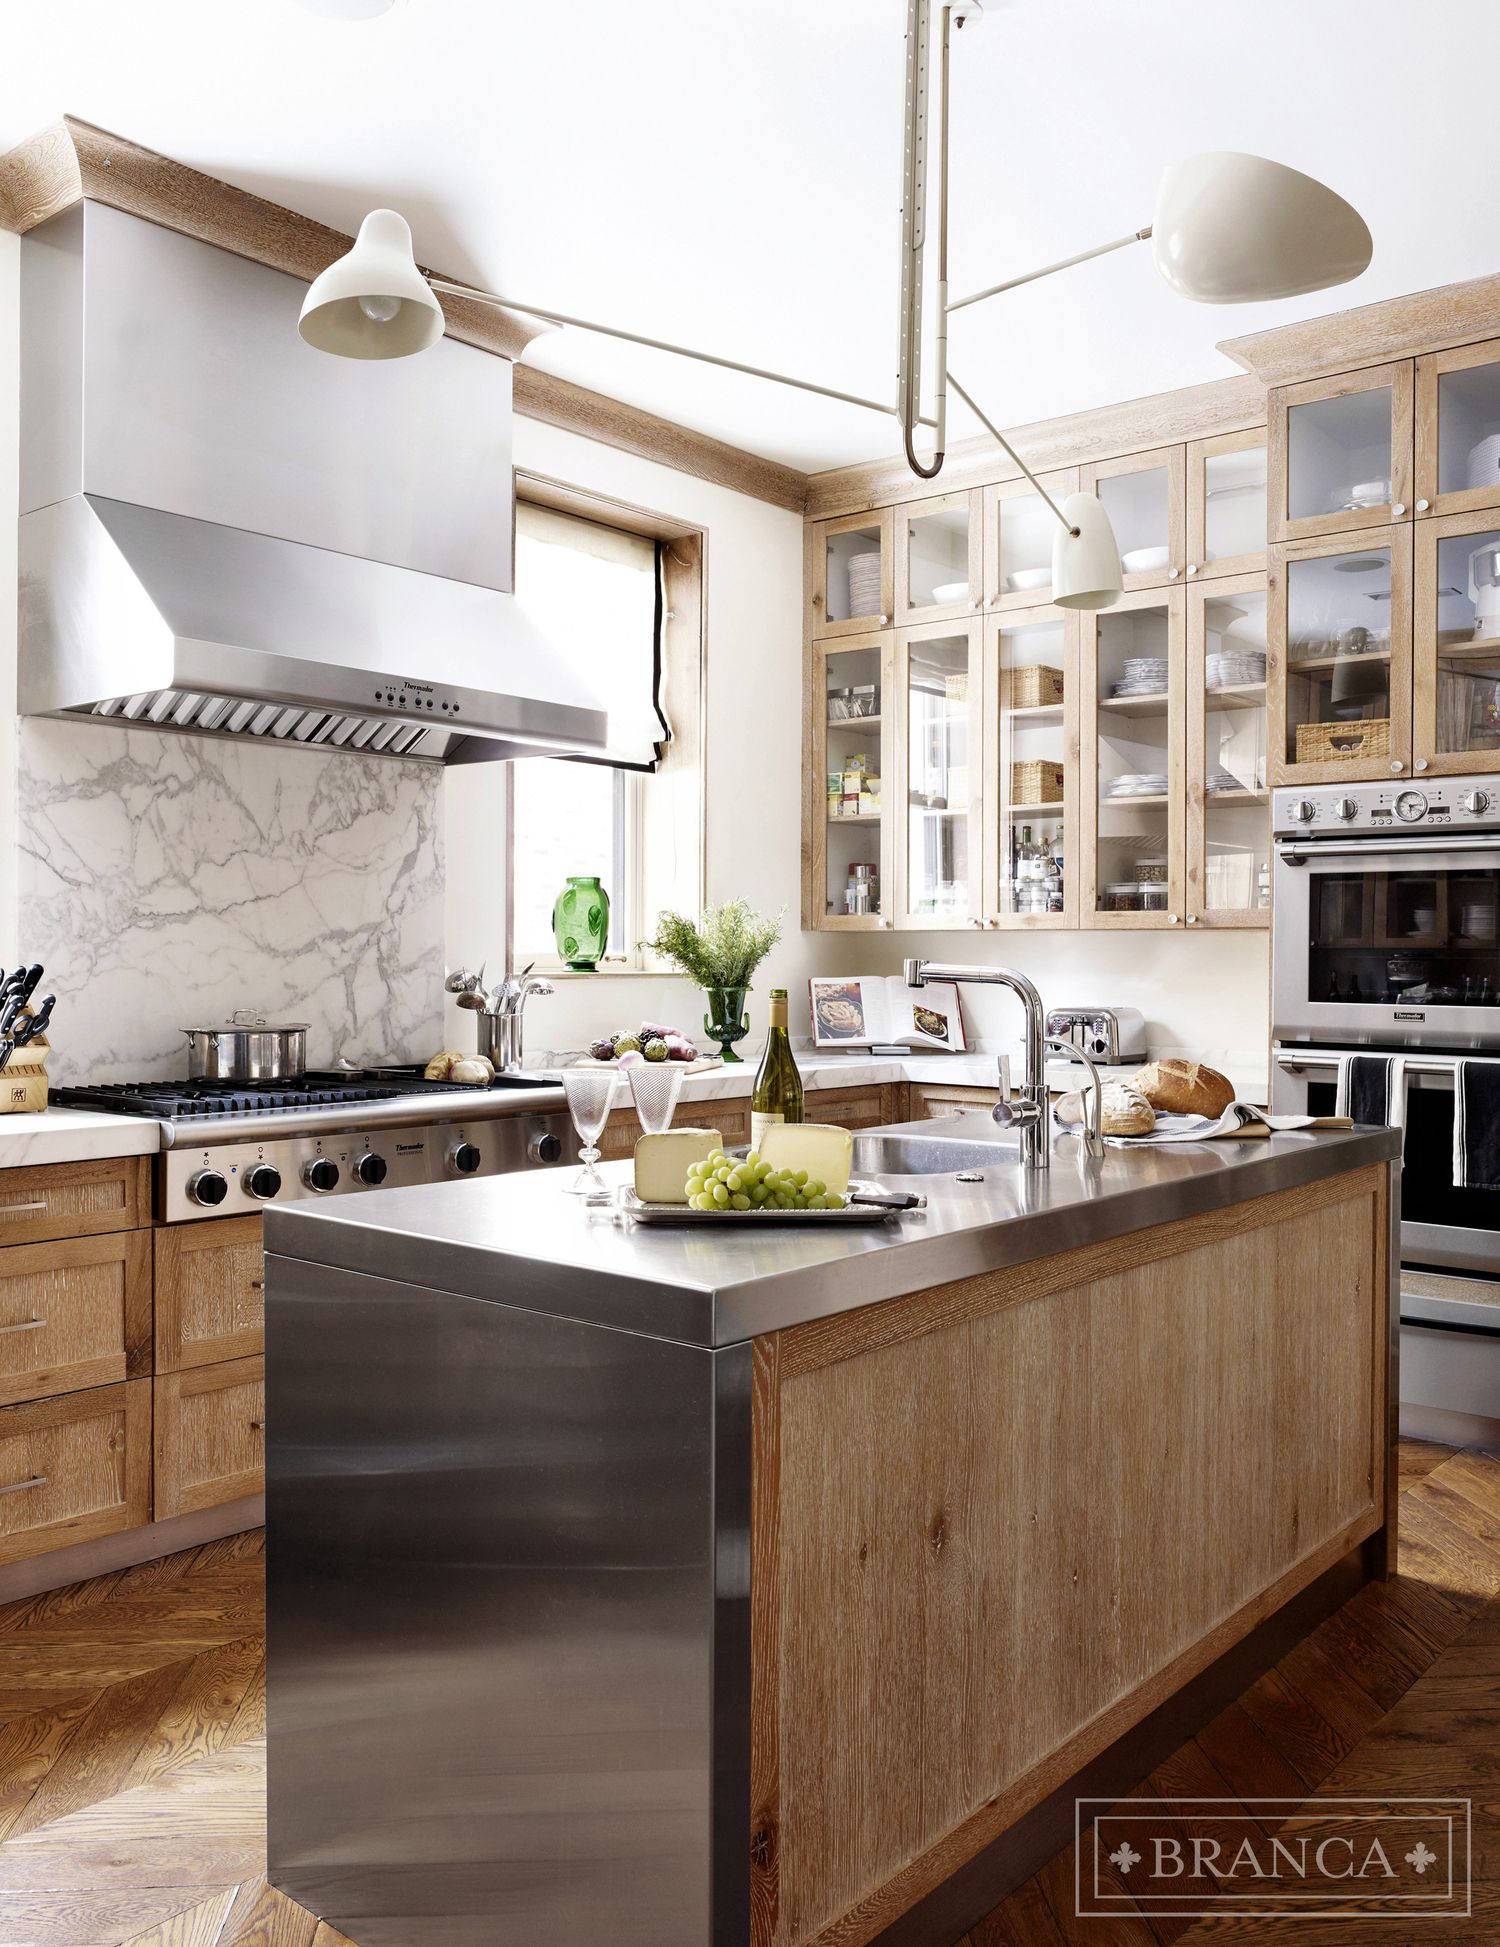 Distressed Wood Cabinet Kitchen With Striped Stone Island And Black Storage Luxe Interiors Design White Oak Kitchen Oak Kitchen Interior Design Kitchen